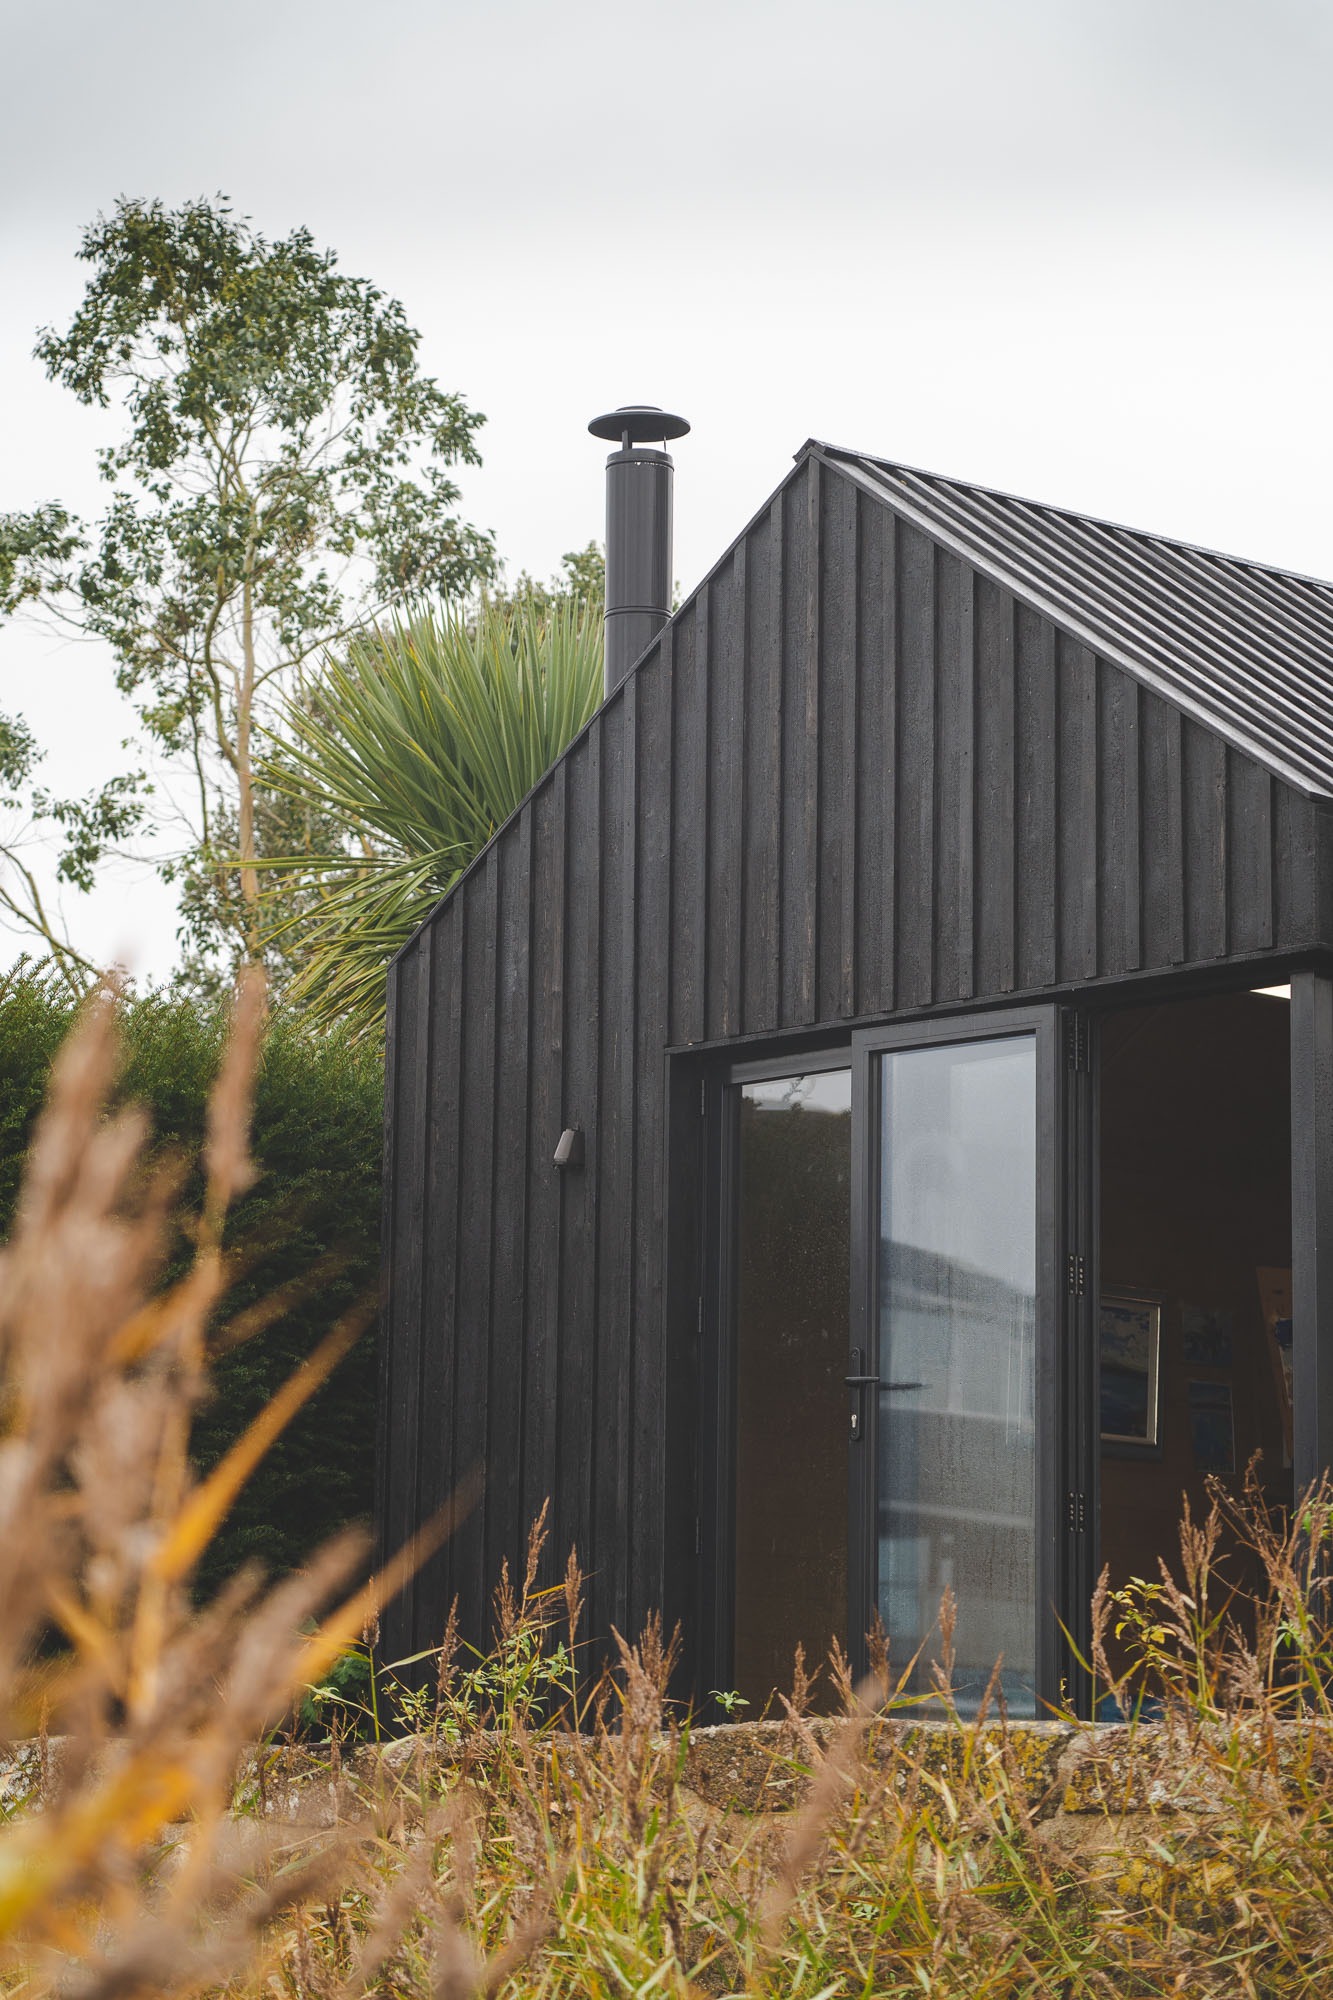 wooden office cabin with shou sugi ban cladding and bi-fold doors